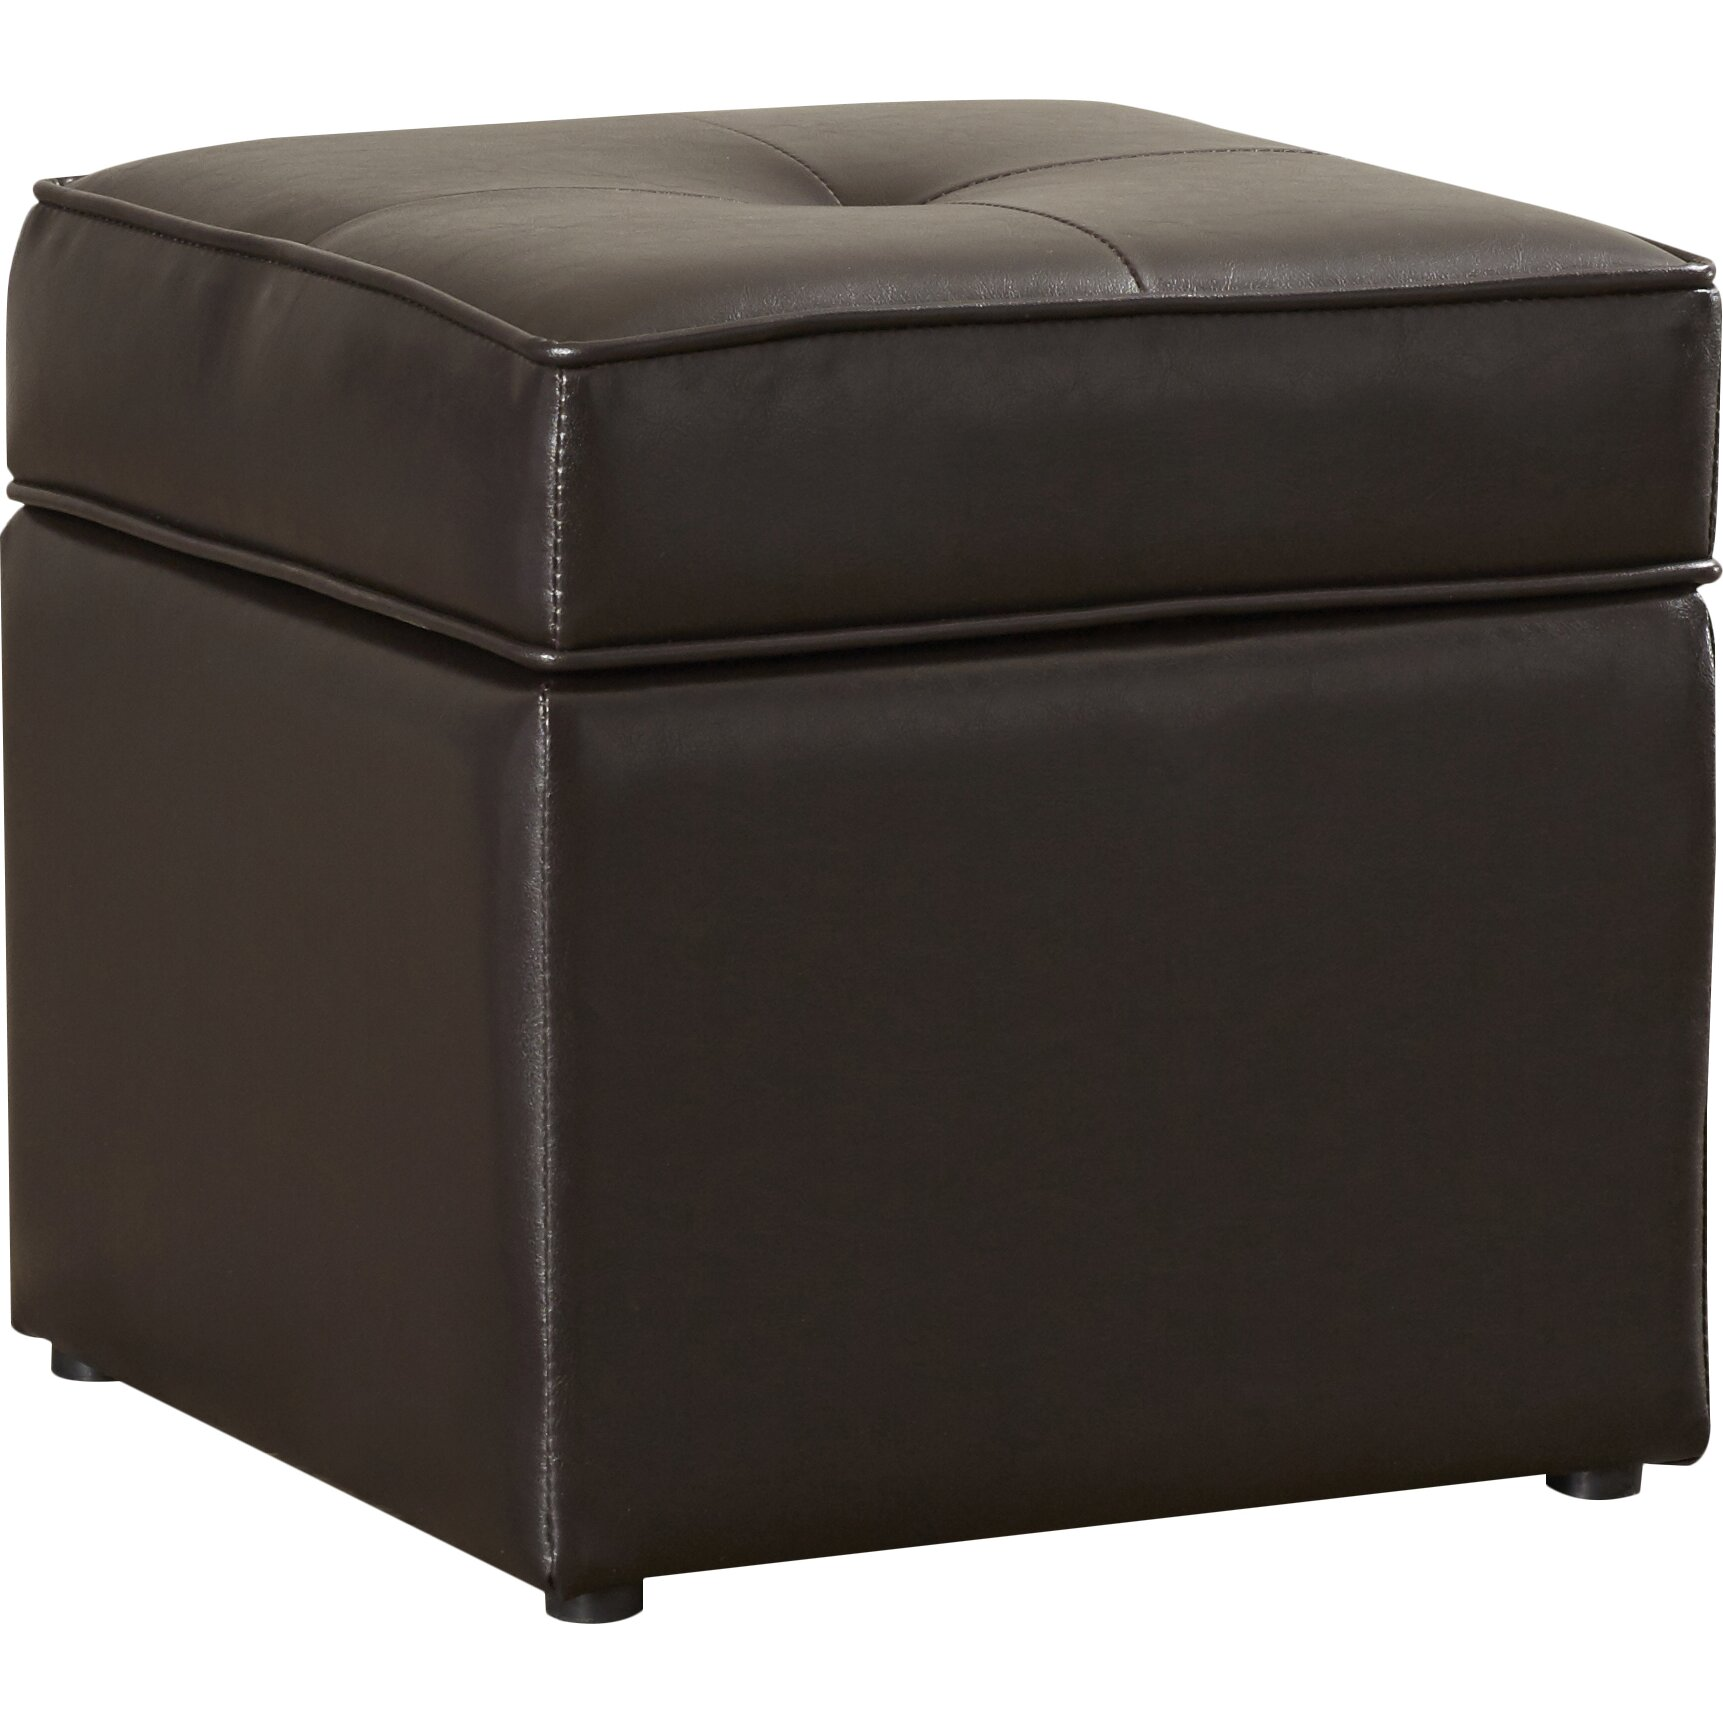 Latitude Run Scorpius Cube Ottoman Reviews Wayfair